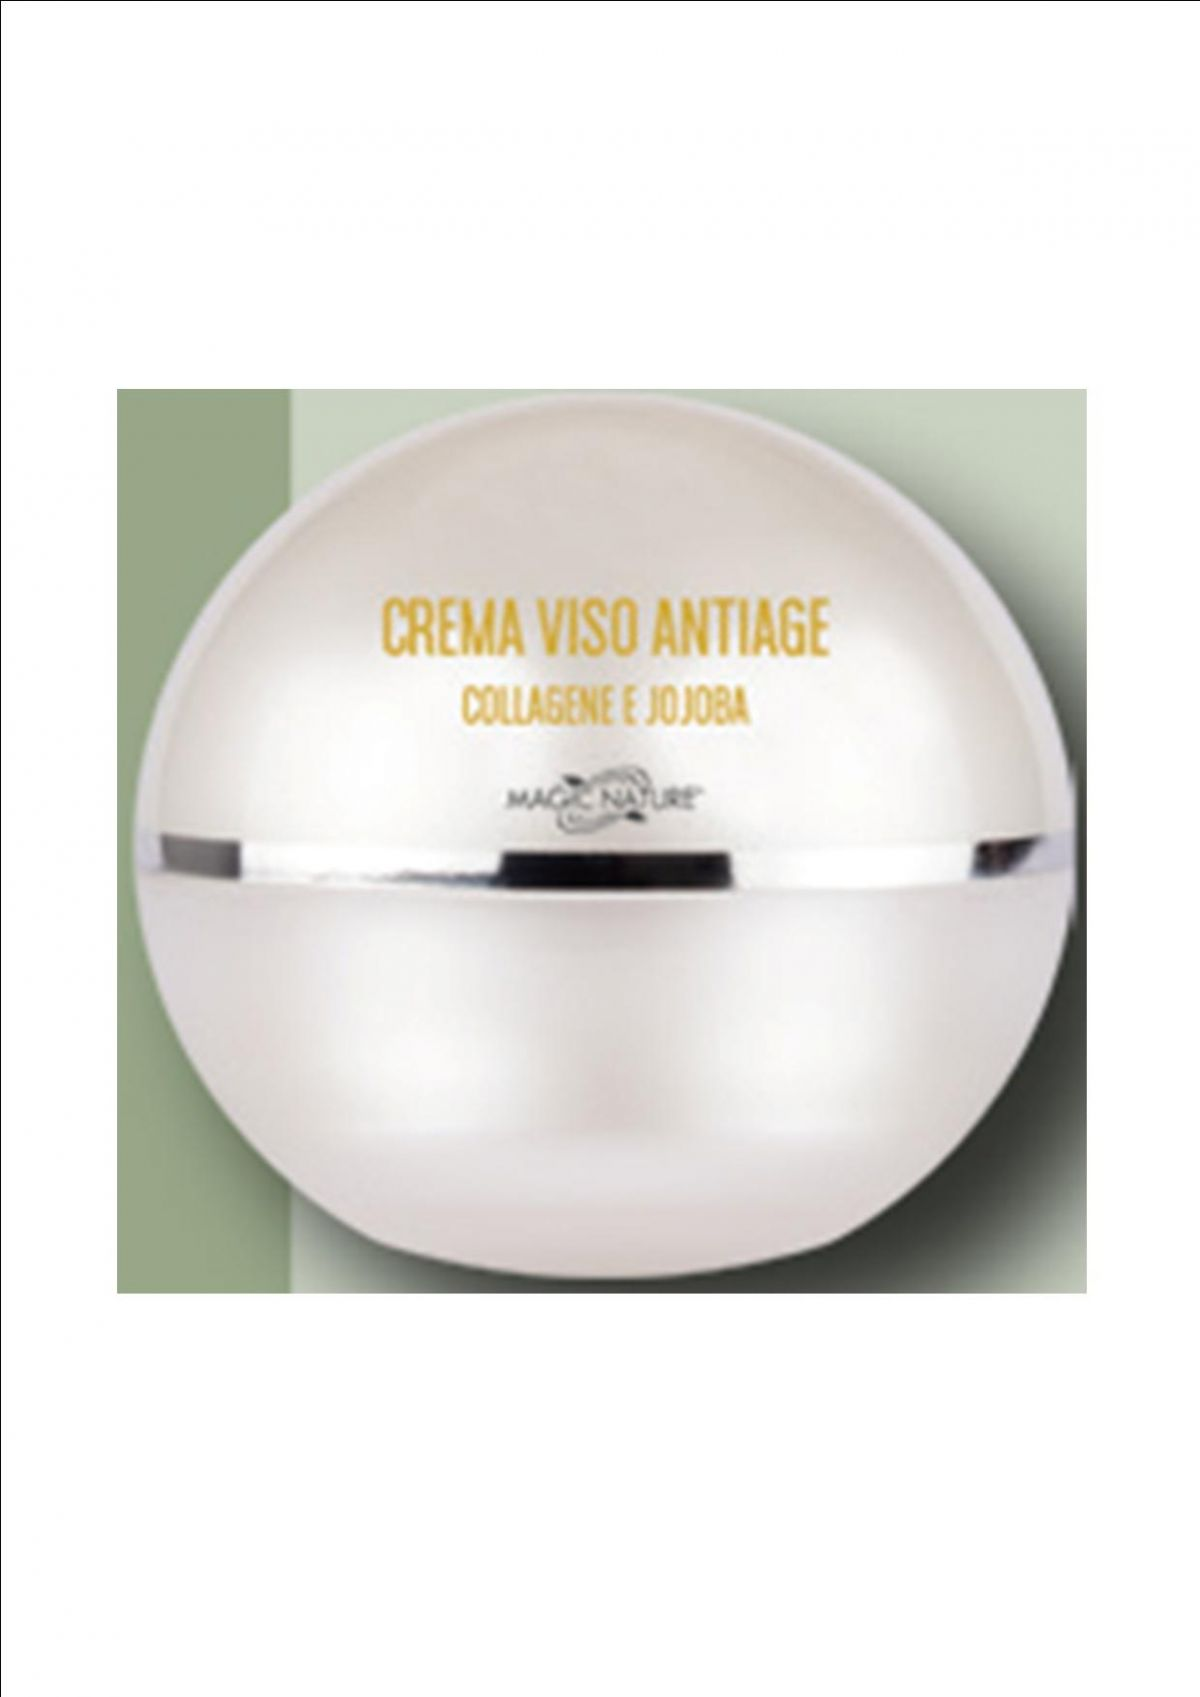 CREMA VISO ANTIAGE COLLAGENE E JOJOBA